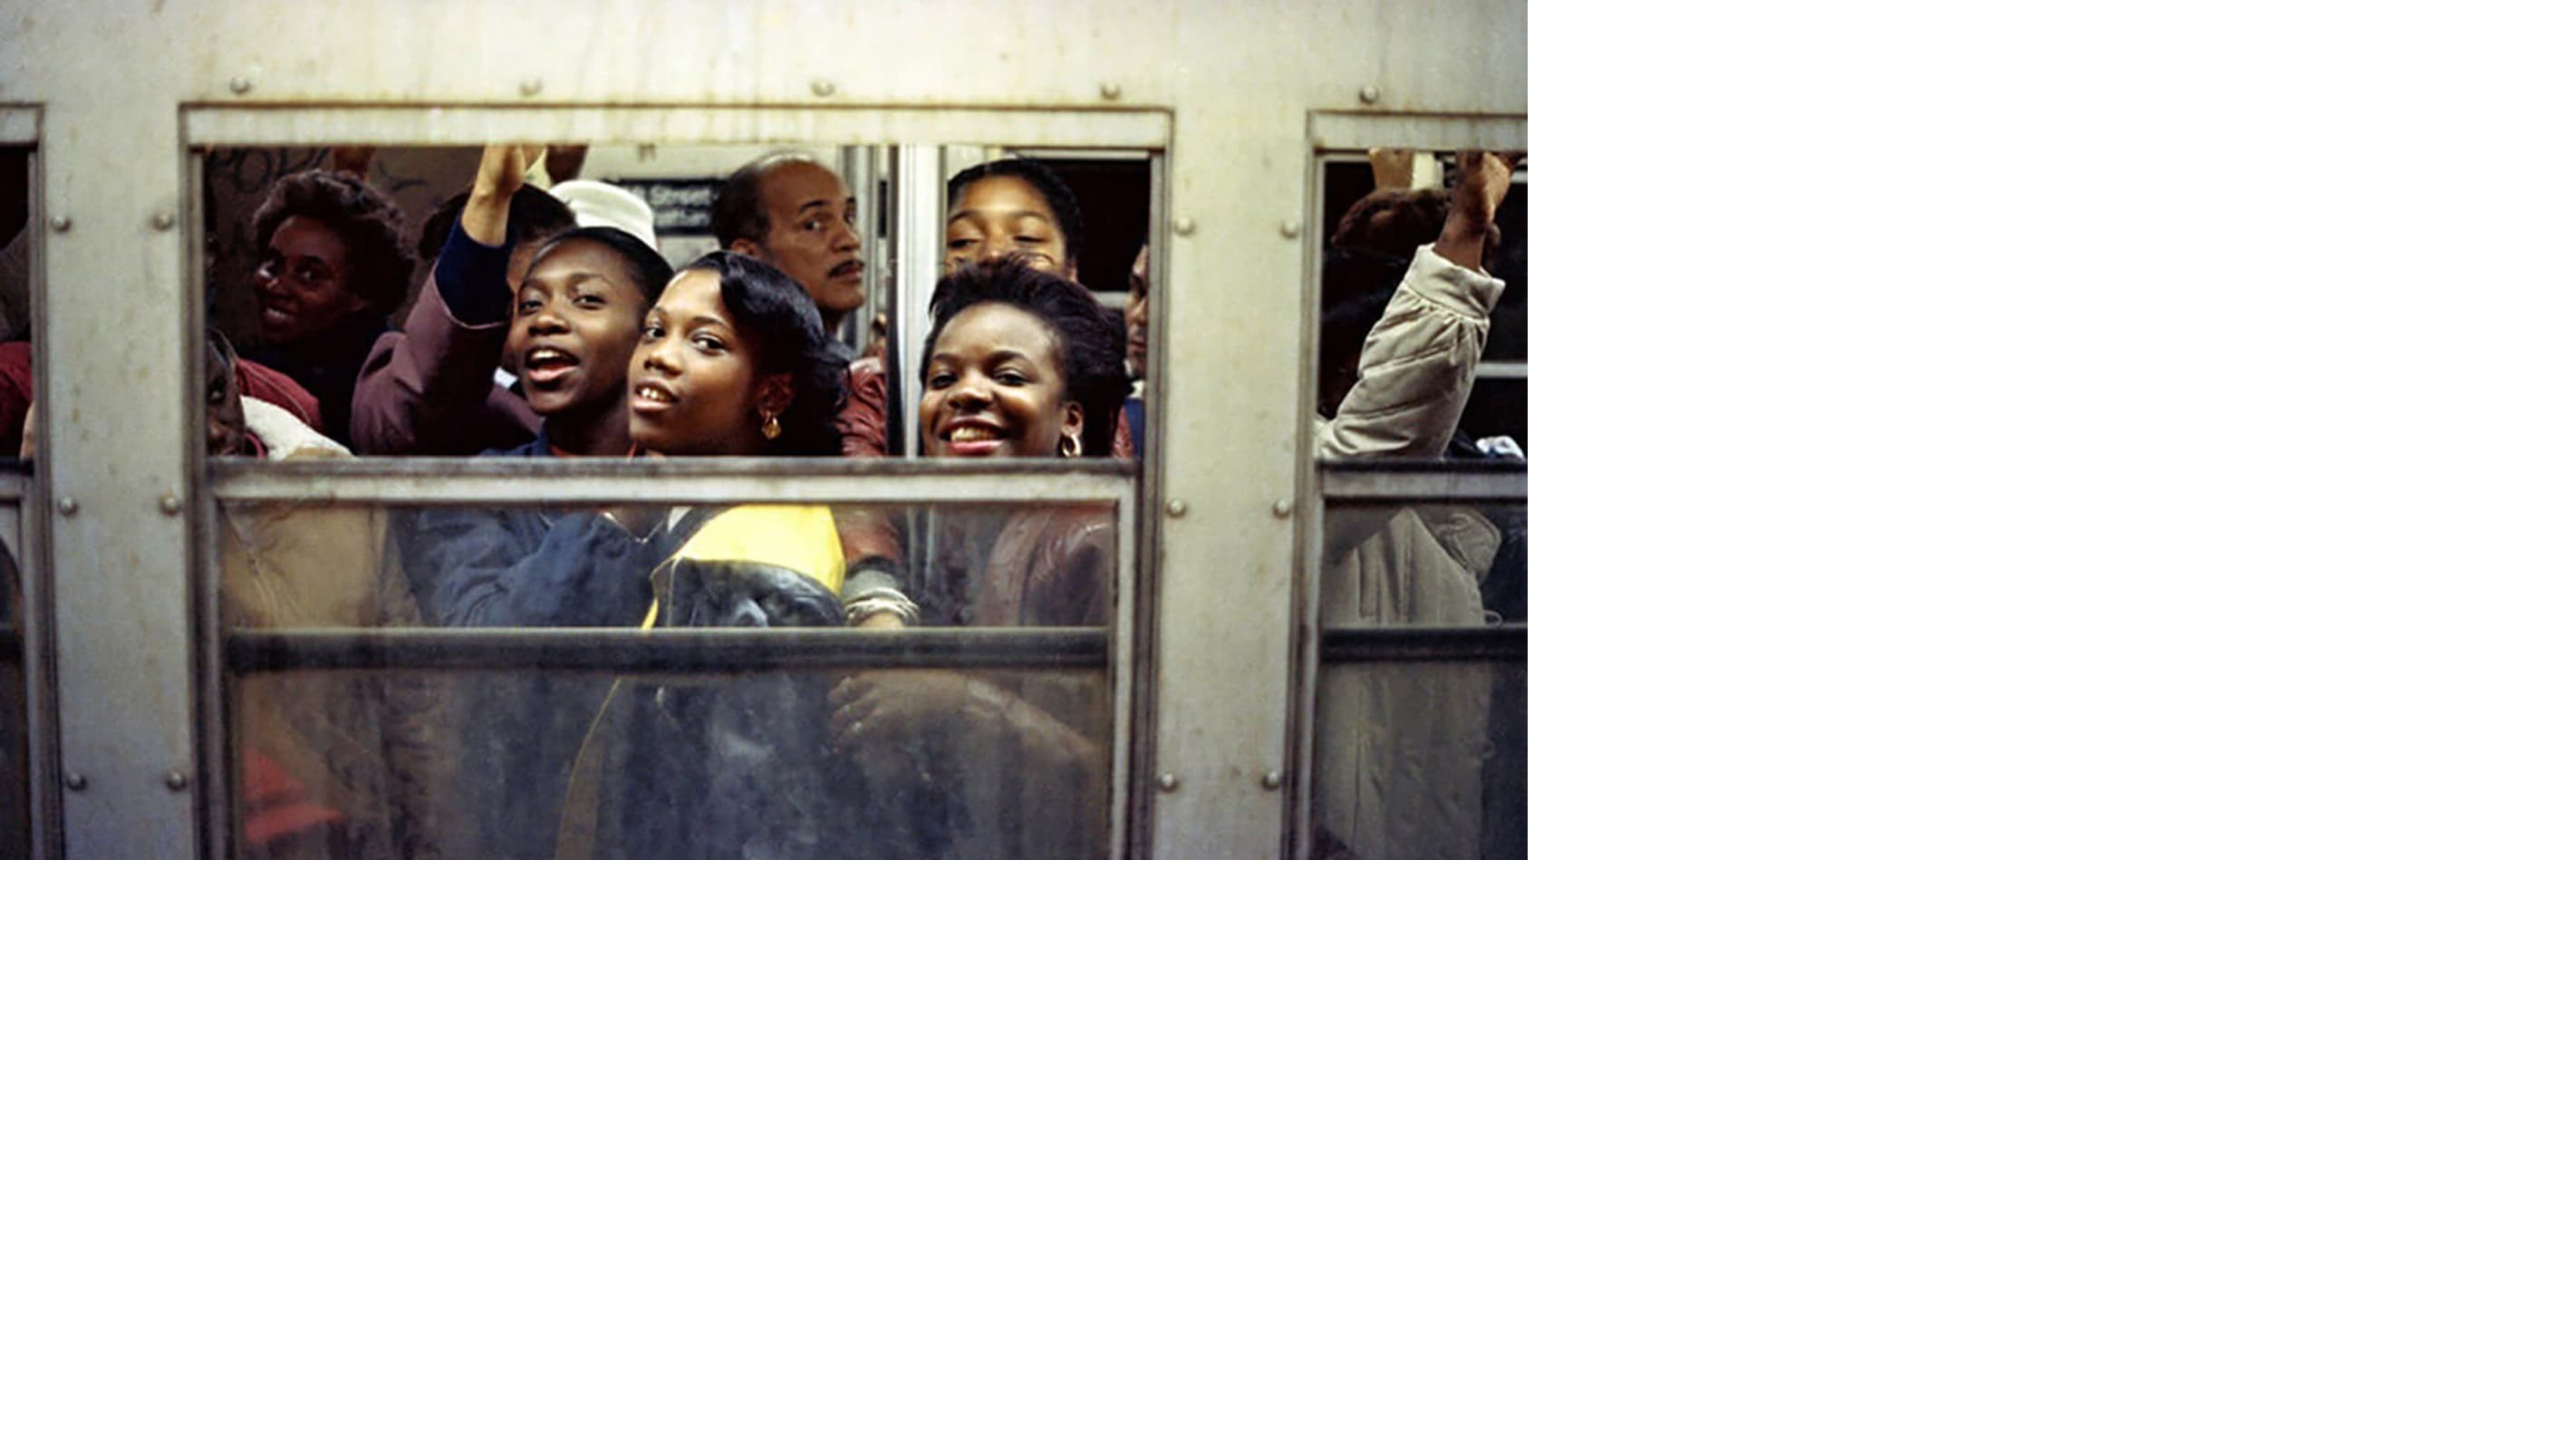 Photographer Jamel Shabazz's radiant love letter to the New York City subway.